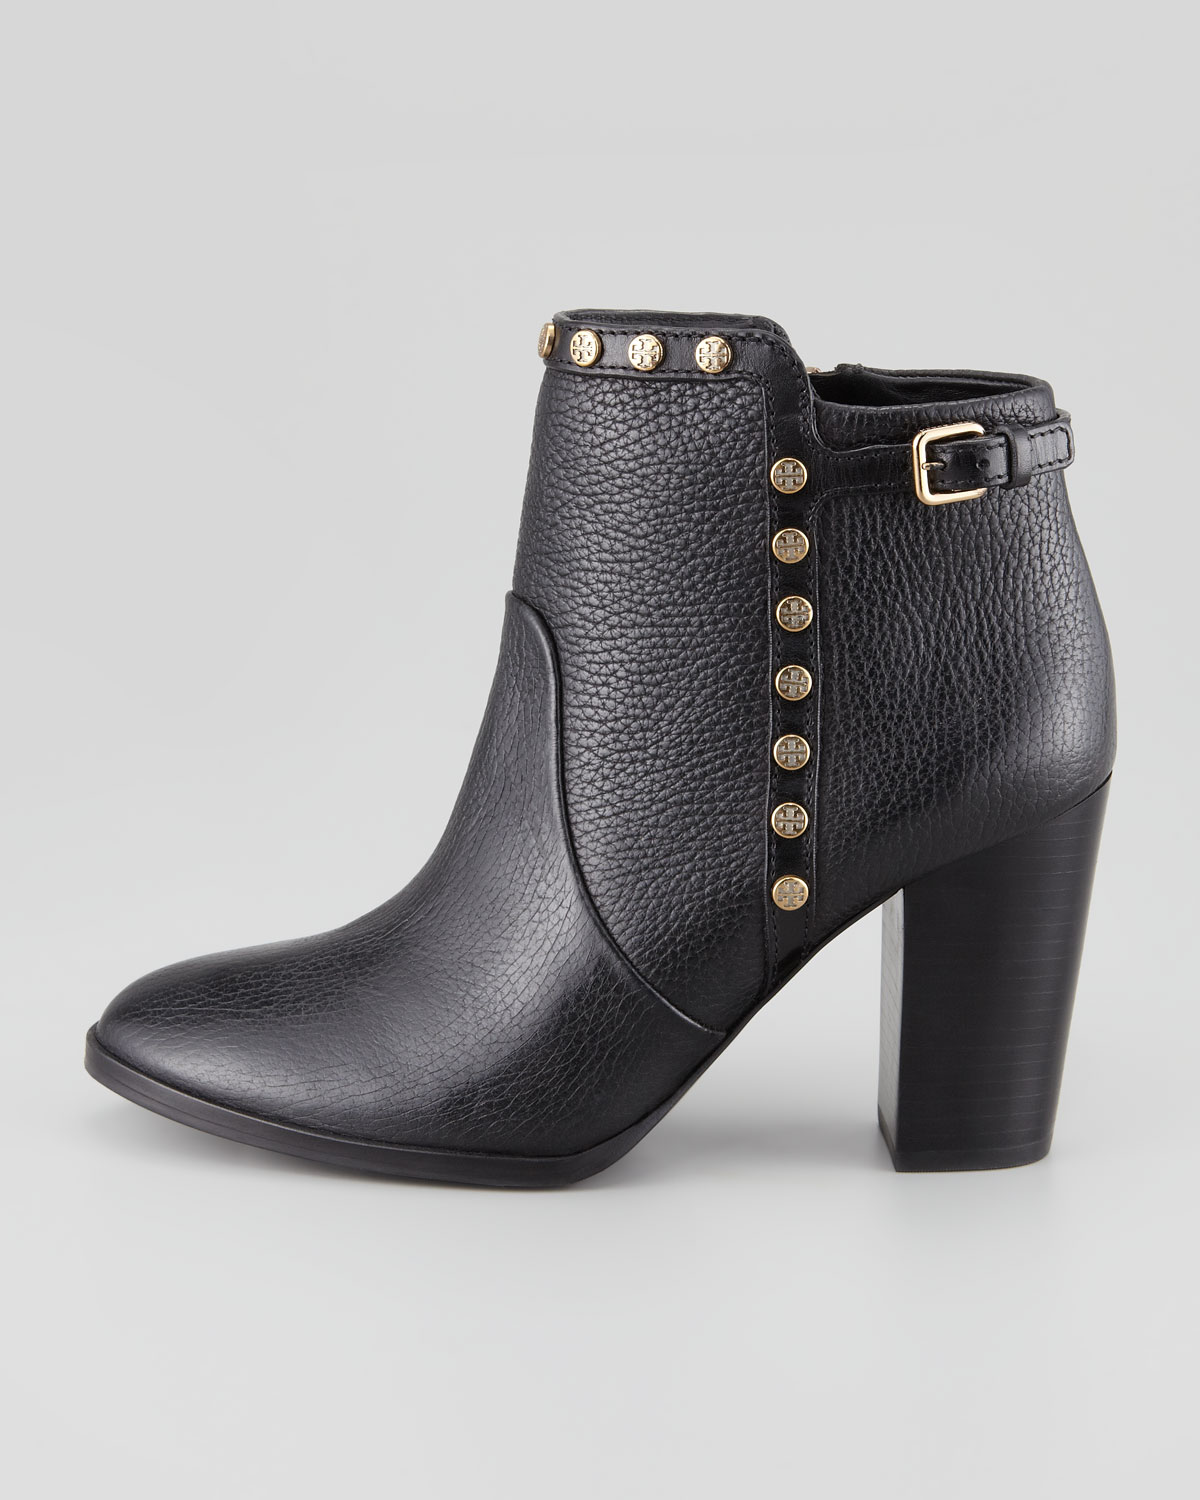 buy cheap brand new unisex cheap price wholesale price Tory Burch Studded Patent Leather Boots pay with visa online cheap low shipping GFfnceqy